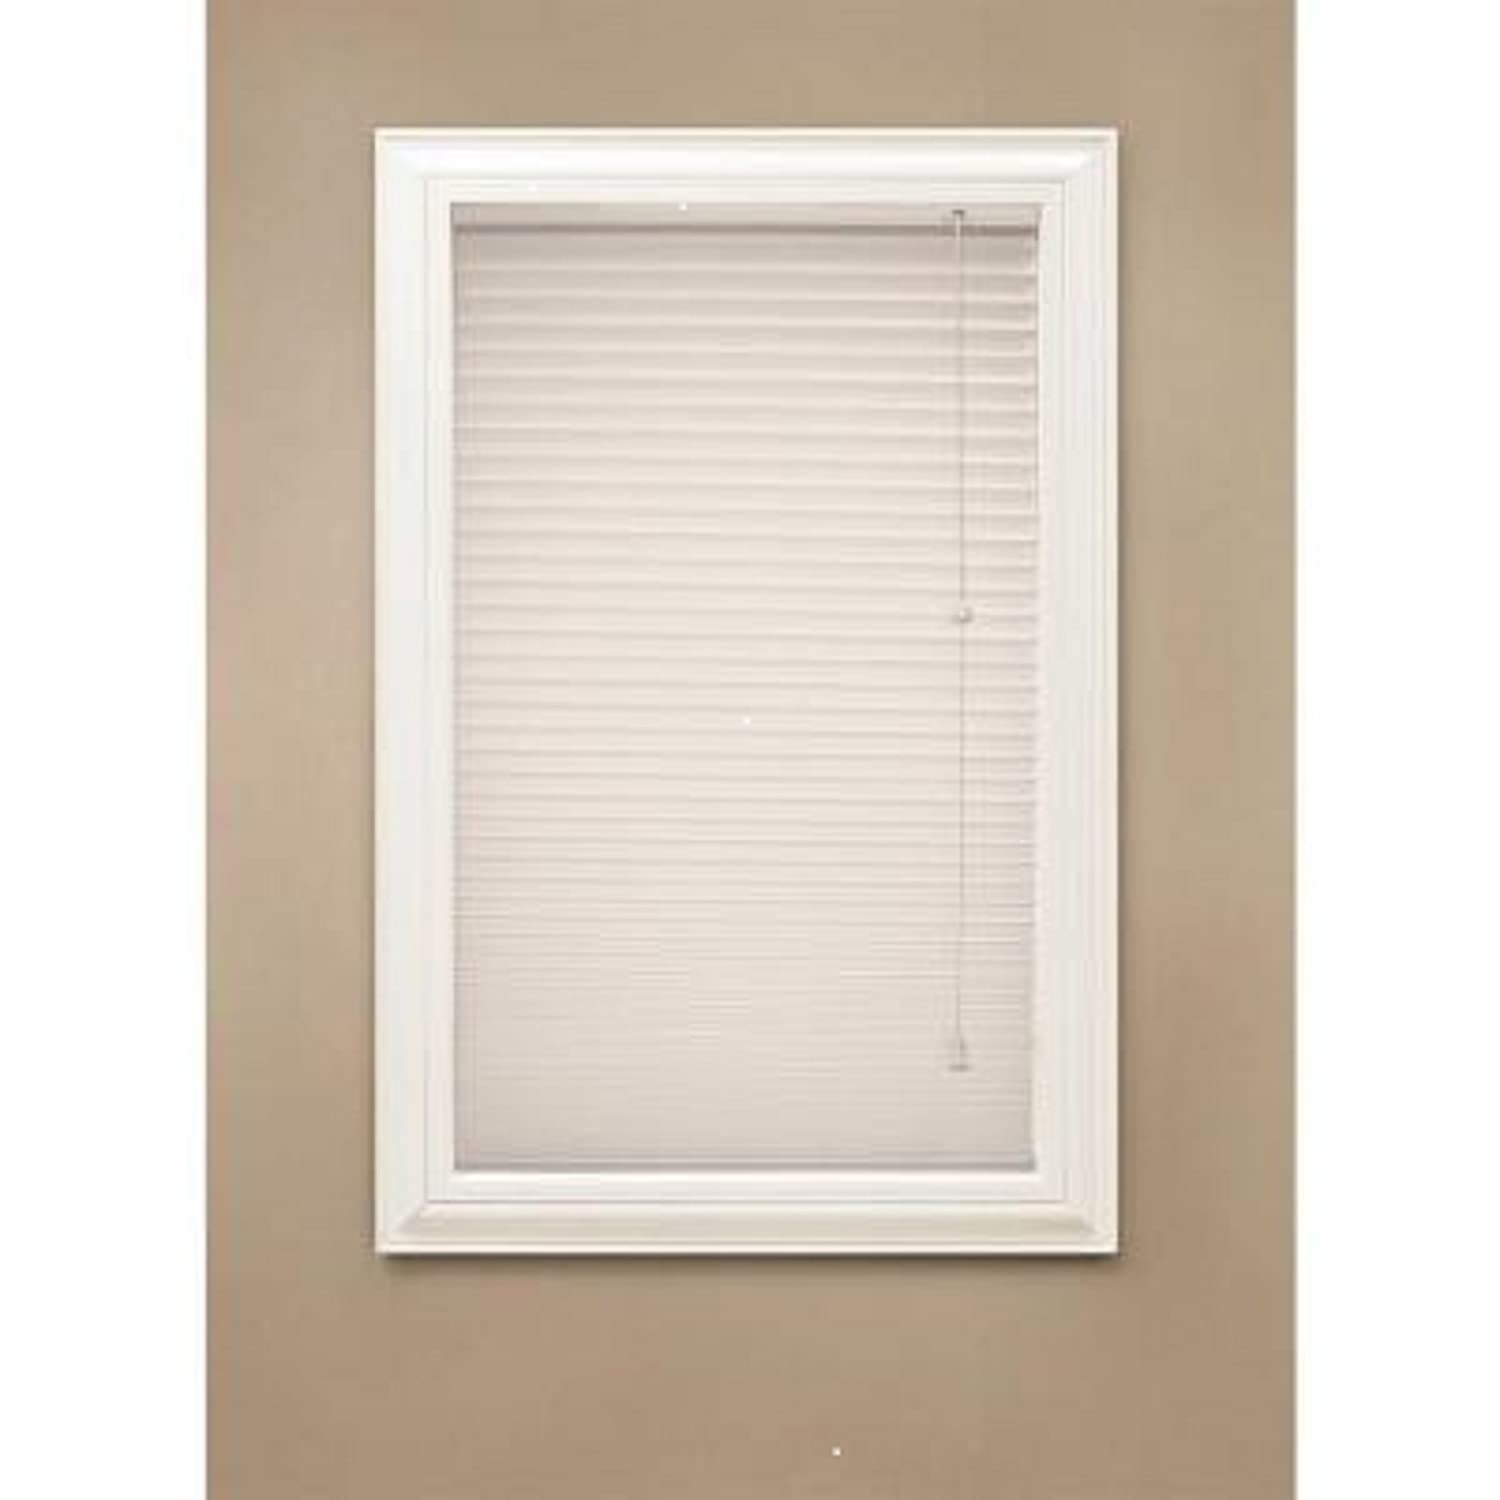 Superb Amazon.com: Home Decorators Collection Natural 9/16 In. Light Filtering Cellular  Shade   72 In. W X 64 In. L: Home U0026 Kitchen